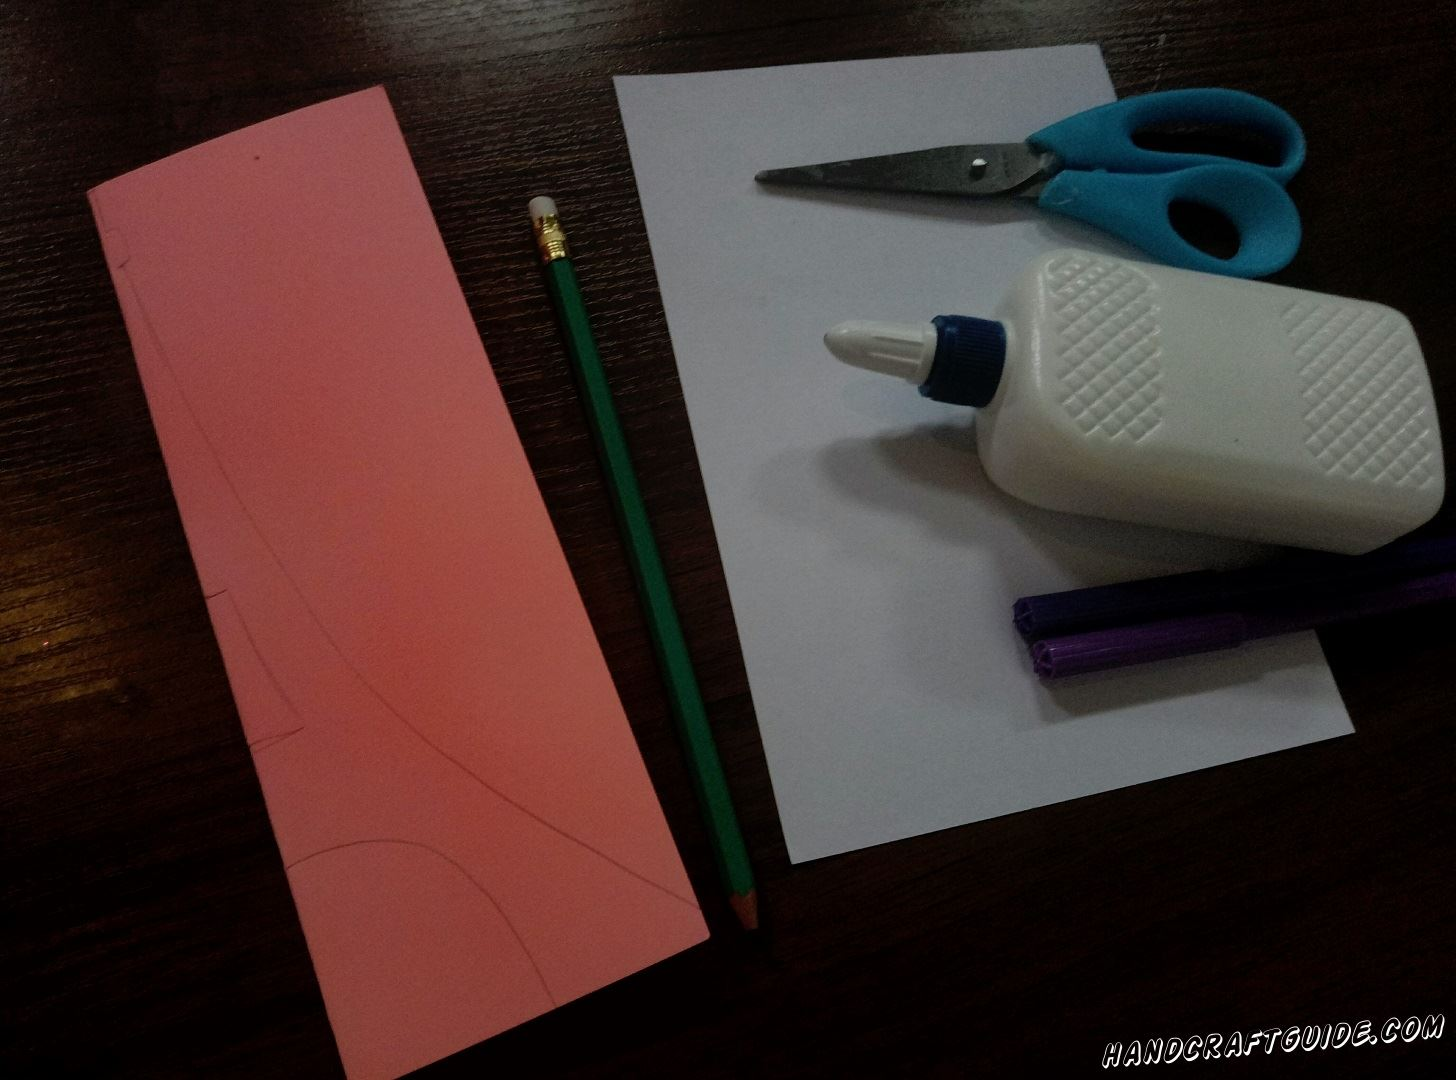 At the very beginning take a pink sheet of paper and vertically fold it in half . Then draw a half of the tower so that when you cut it out, you'll get a symmetrical figure.